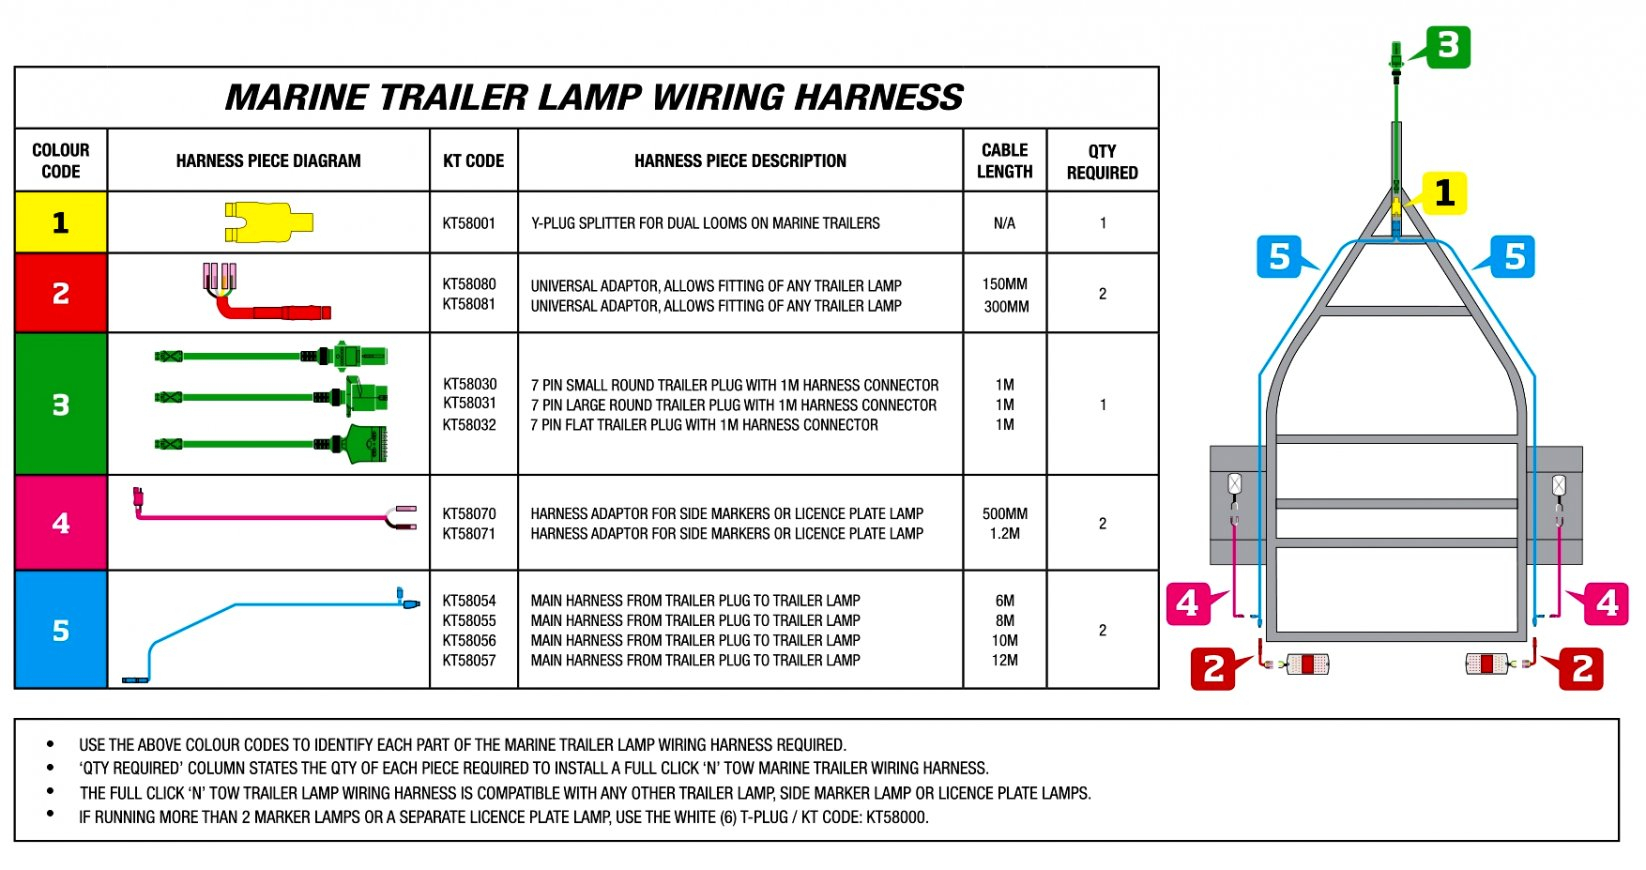 Gallery Of Trailer Light Wiring Diagram 7 Way Pin Plug Check This - Wiring Diagram For Car Trailer Lights